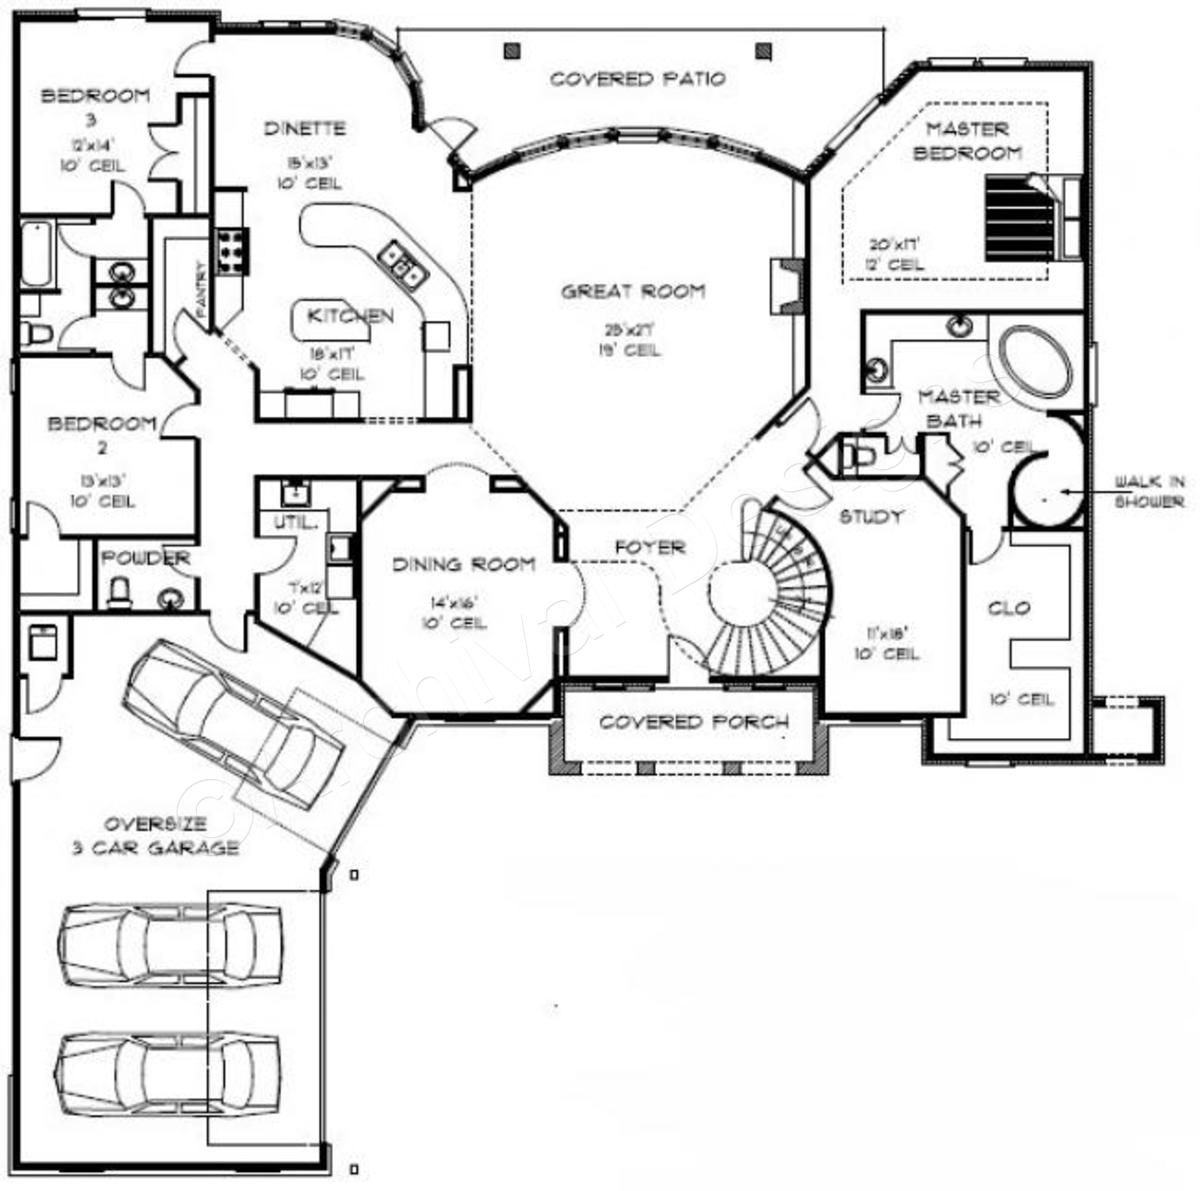 West Gate House Plan West Gate House Plan First Floor Archival Designs Two Story House Plans House Plans 4000 Sq Ft House Plans